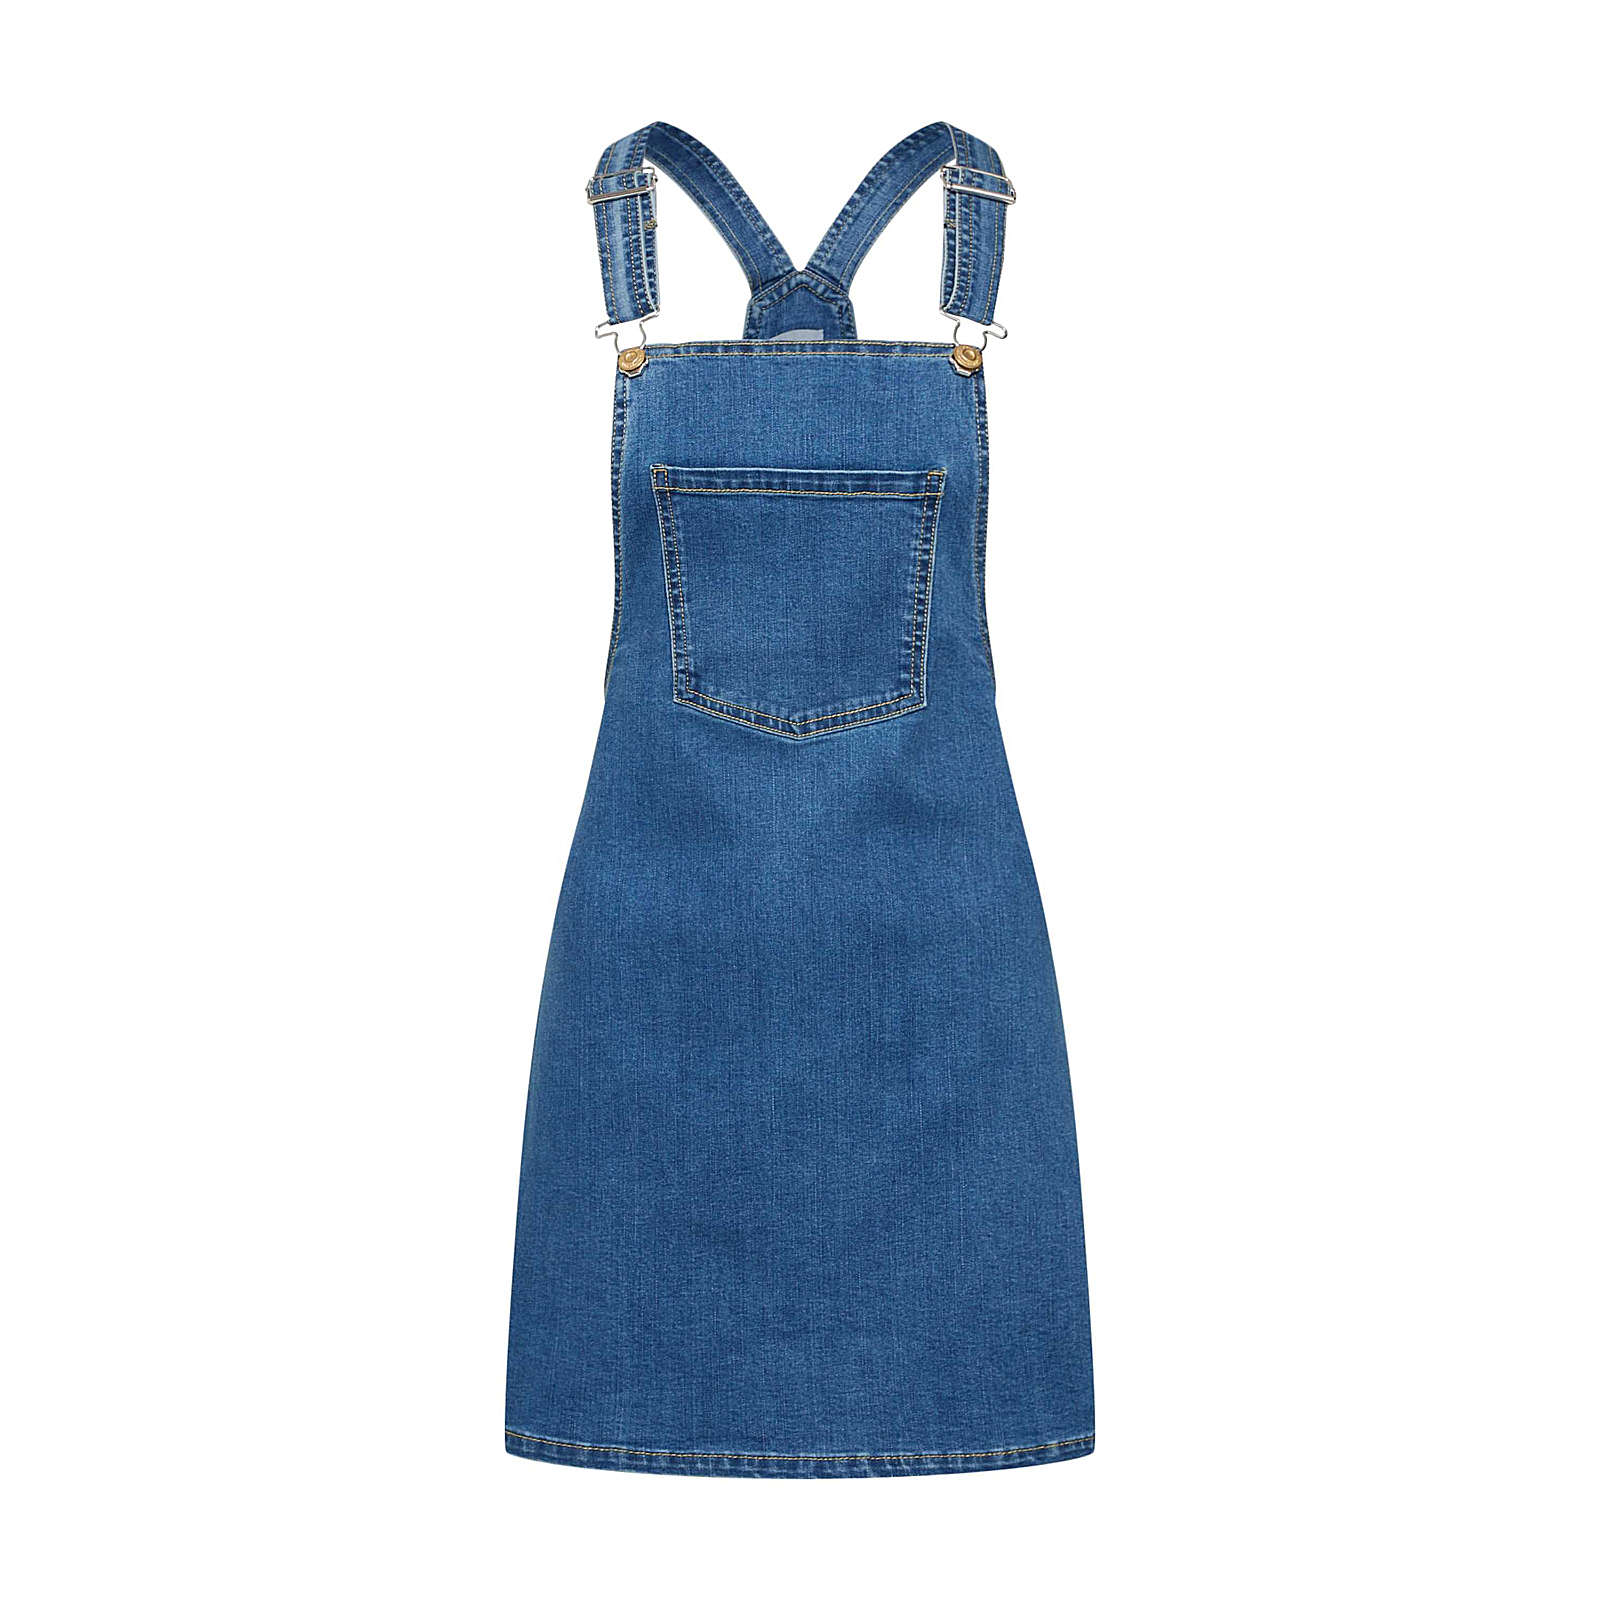 ONLY Kleid Jeanskleider blue denim Damen Gr. 36